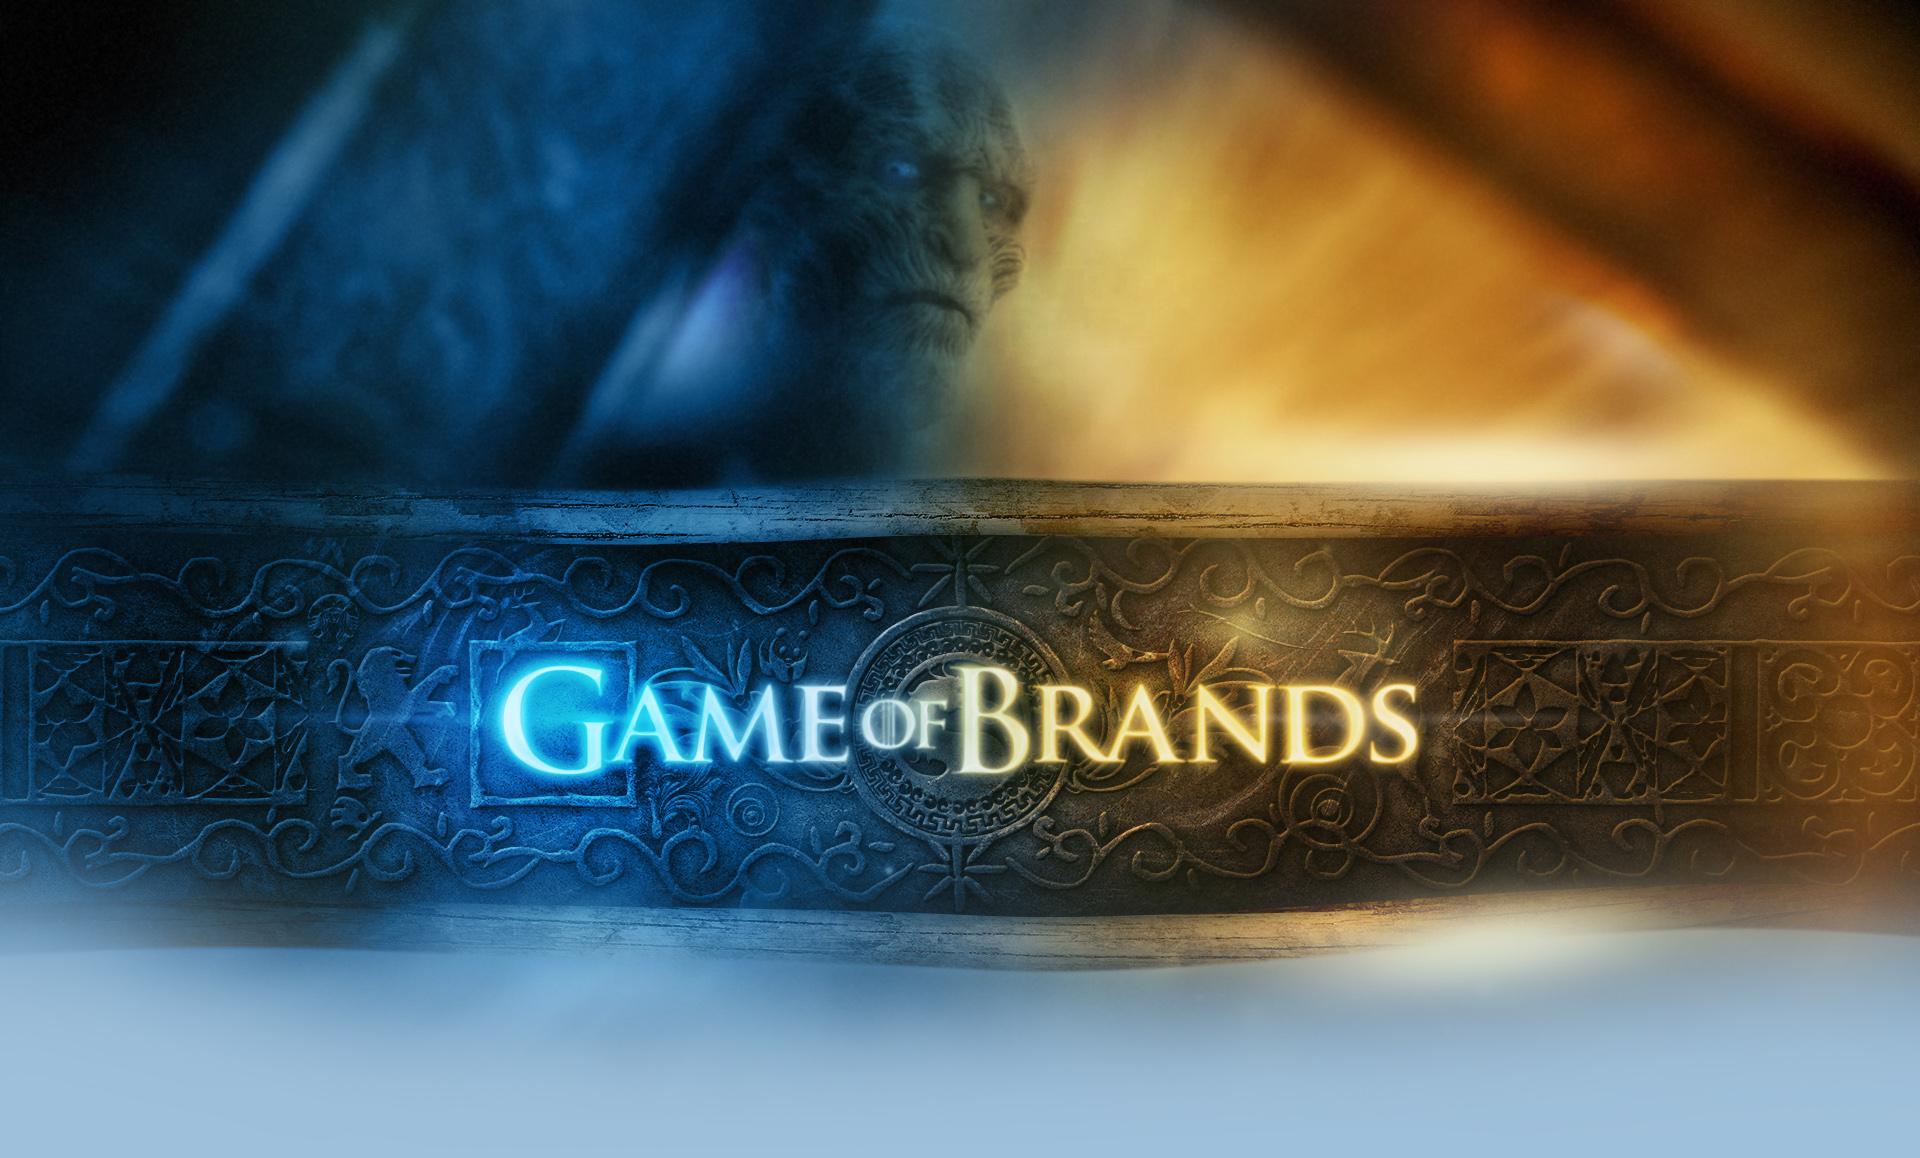 Game of brands by Stefan Asafti